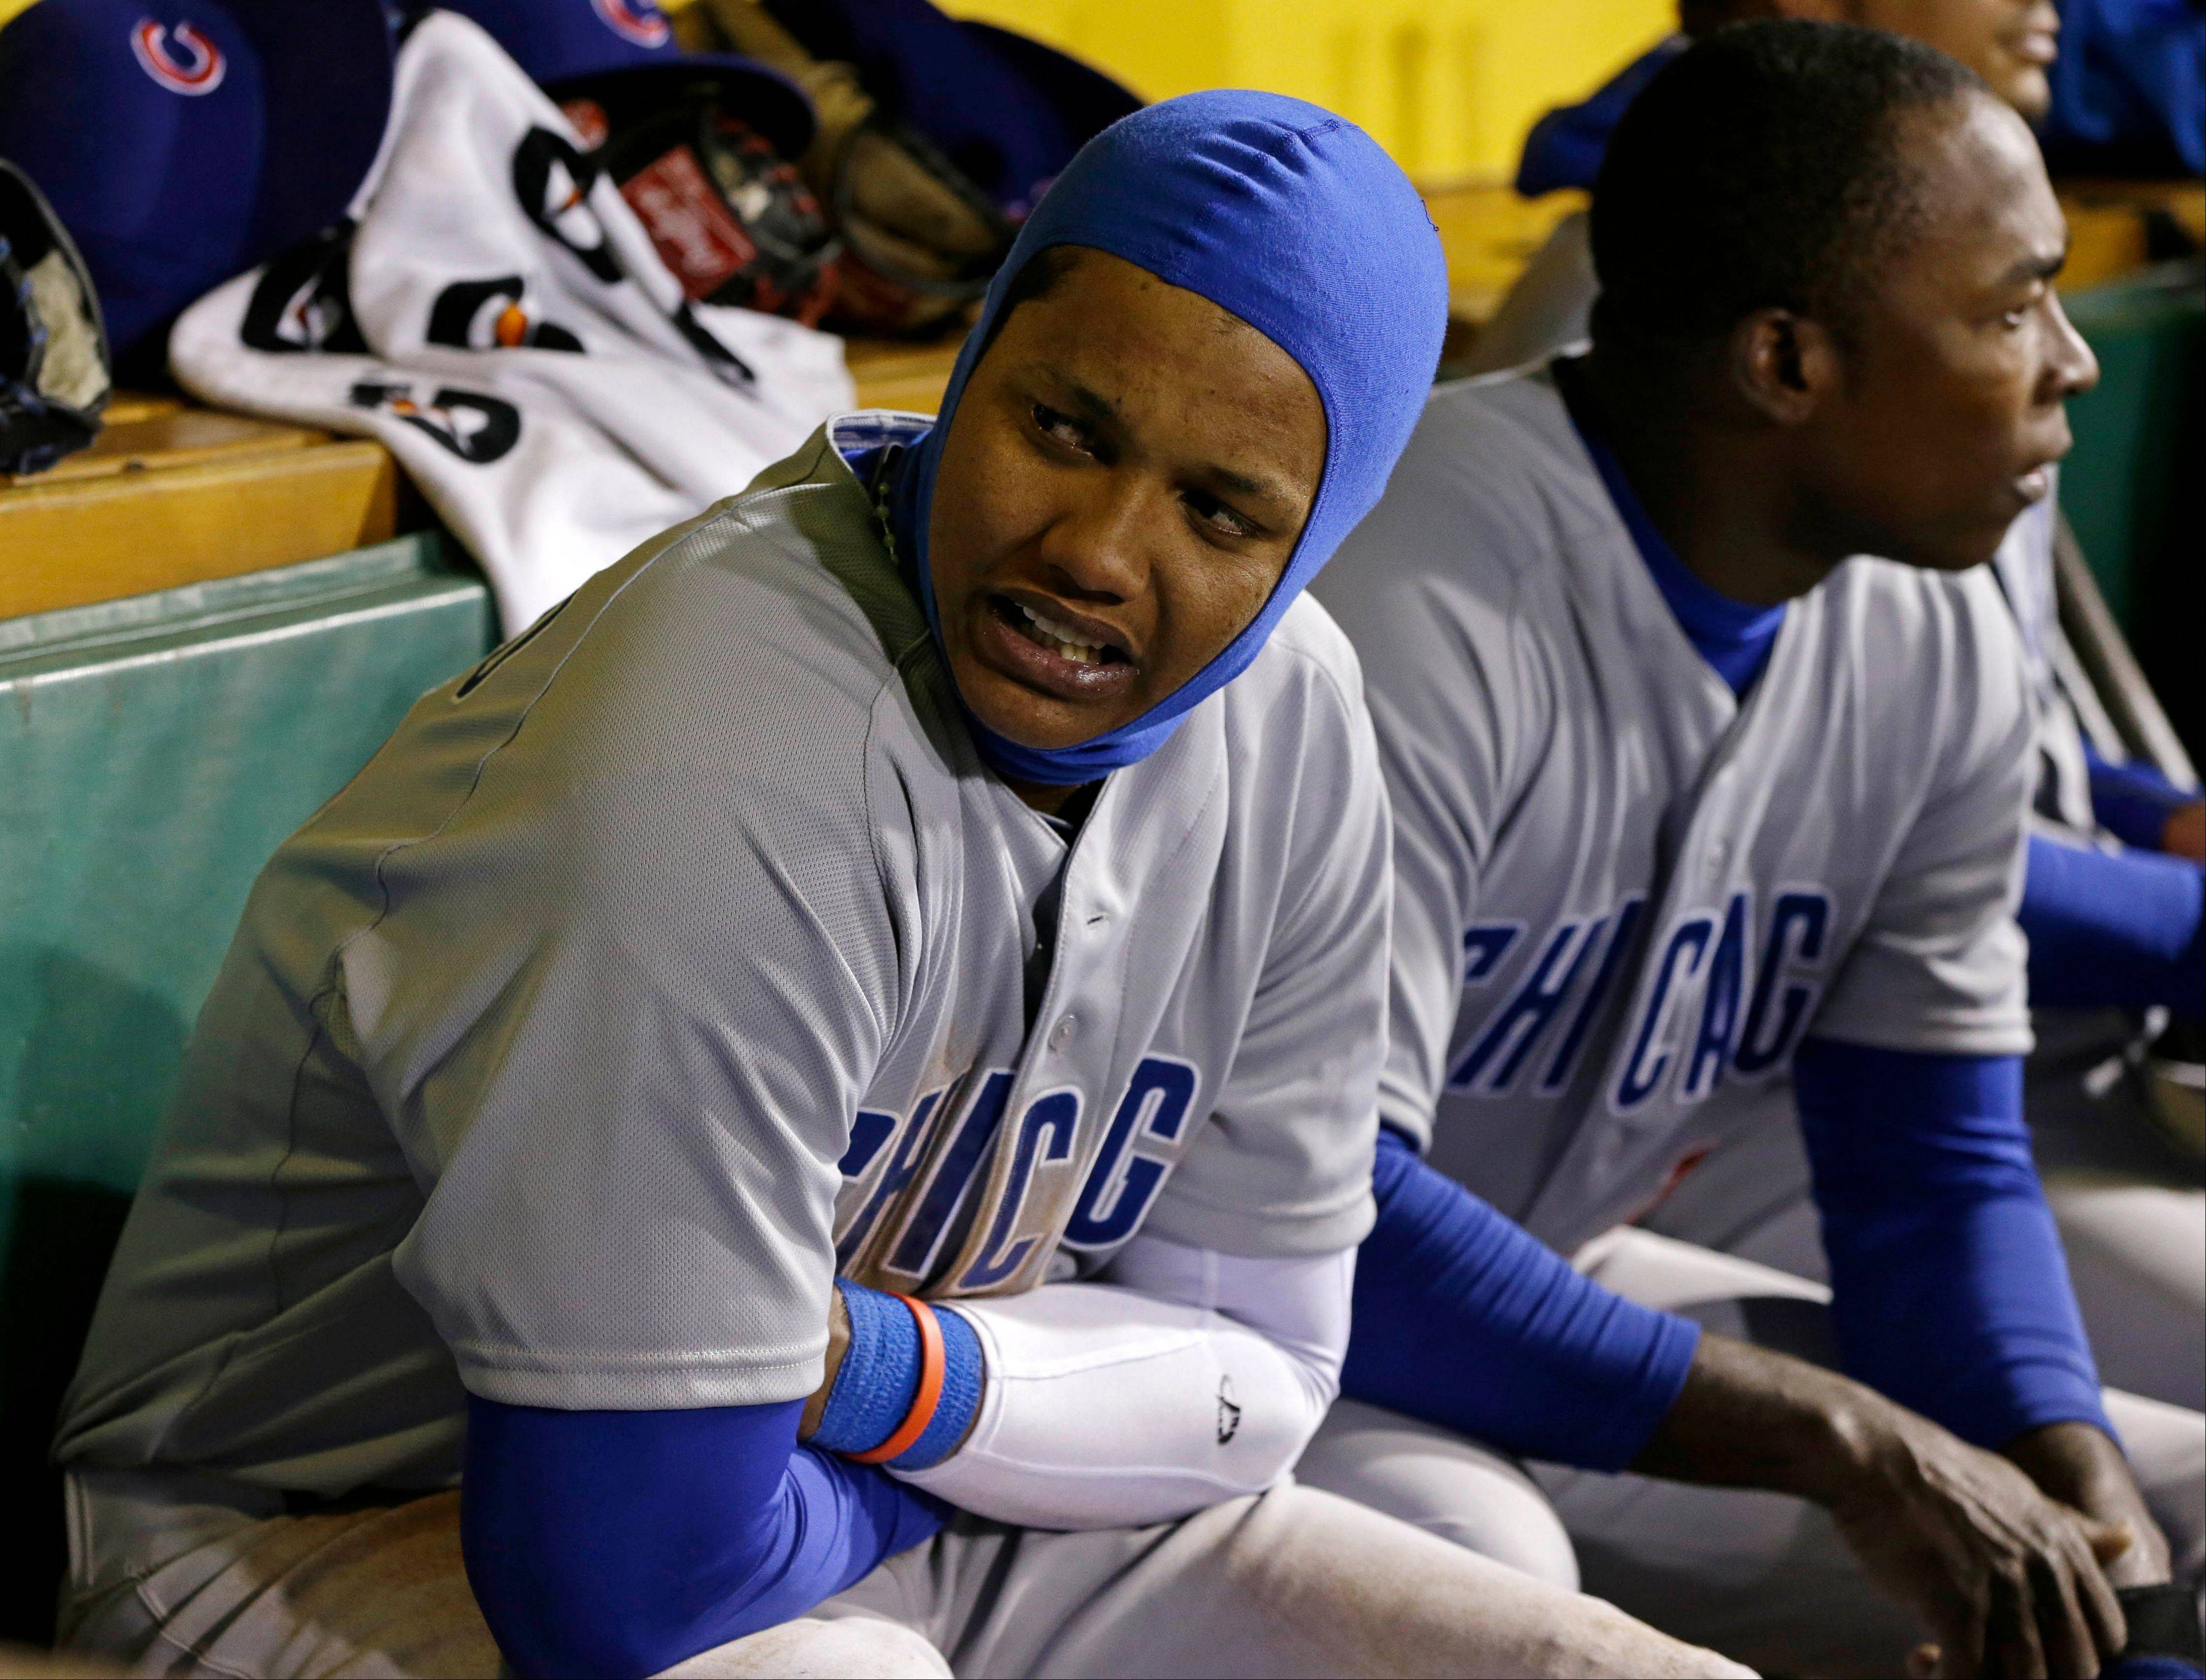 Starlin Castro, left, and Chicago Cubs left fielder Alfonso Soriano sit on the bench in the ninth inning during a baseball game against the Pittsburgh Pirates in Pittsburgh, Wednesday, April 3, 2013. The Pirates win 3-0.